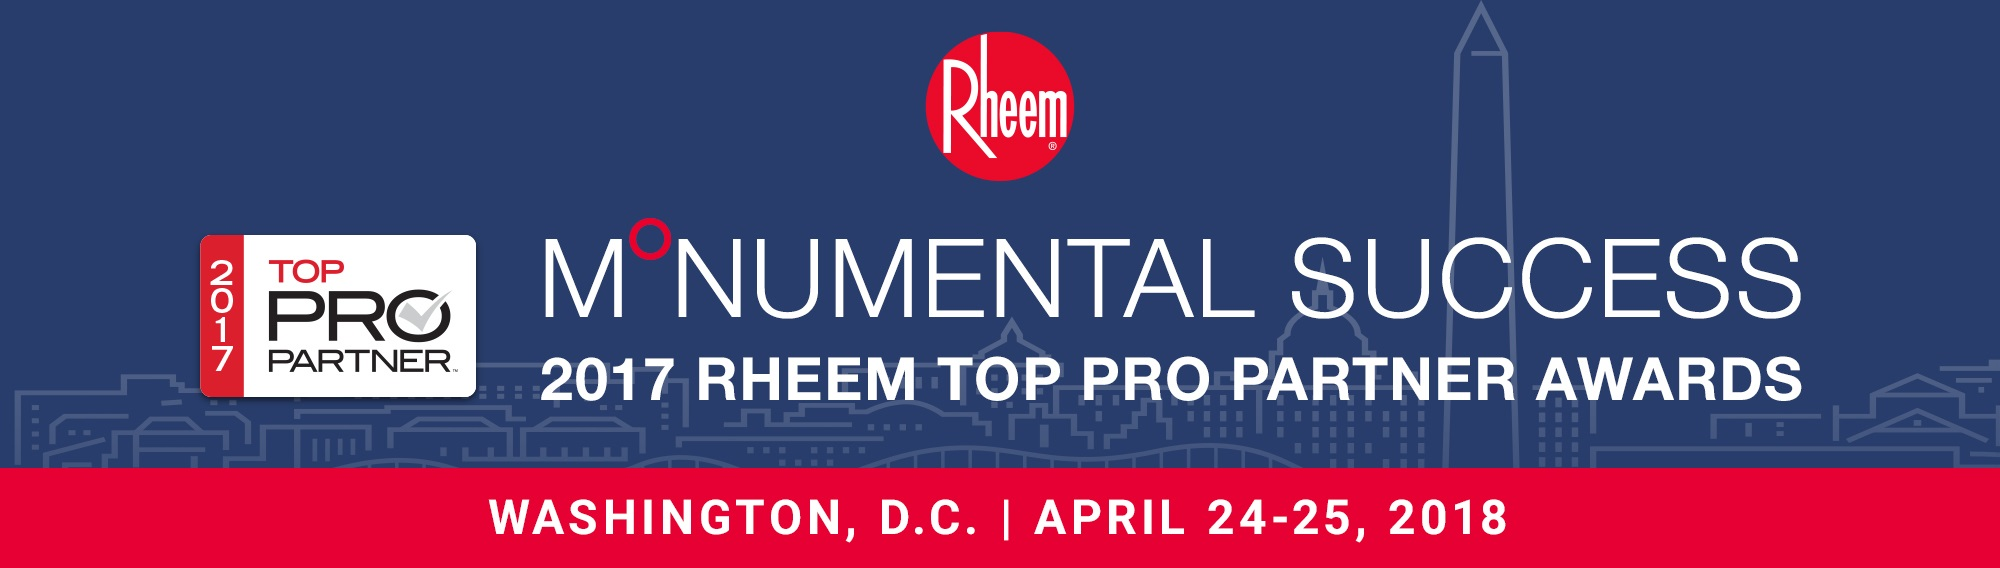 2017 Rheem Top Pro Partner Awards - Contractors